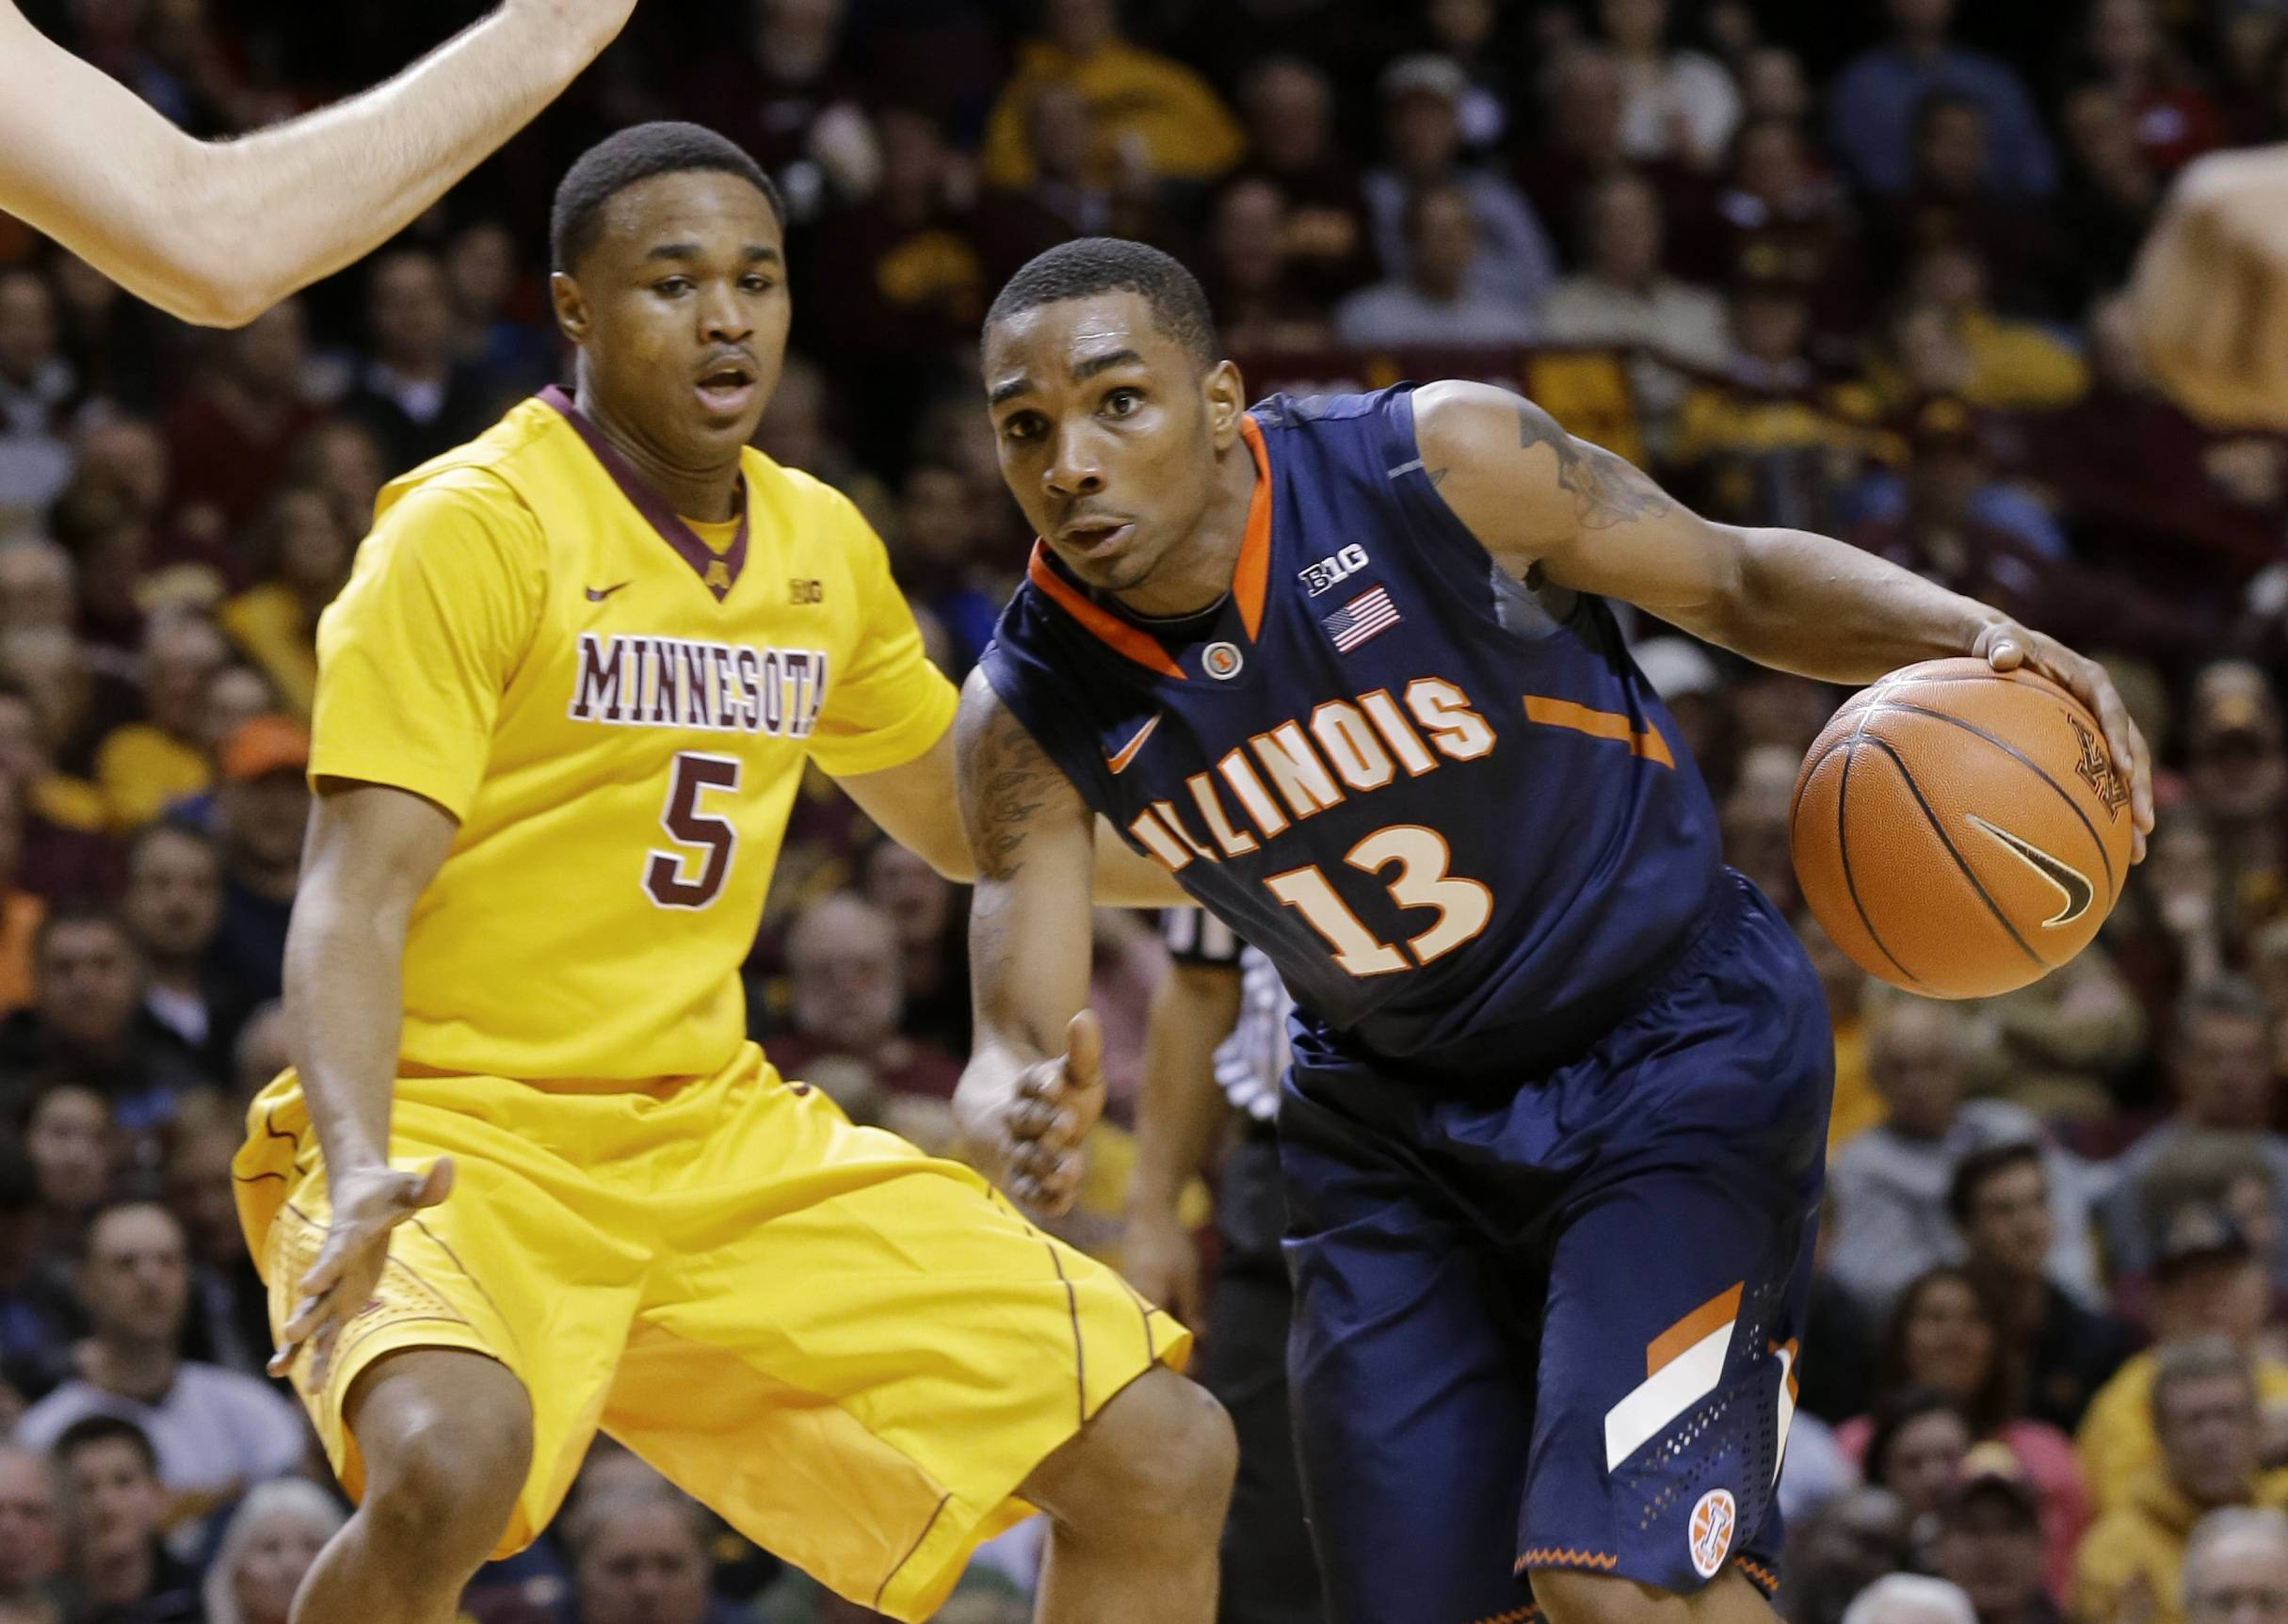 Illinois guard Tracy Abrams (13) drives against Minnesota guard Daquein McNeil (5) during the first half of an NCAA college basketball game in Minneapolis, Wednesday, Feb. 19, 2014. (AP Photo/Ann Heisenfelt)